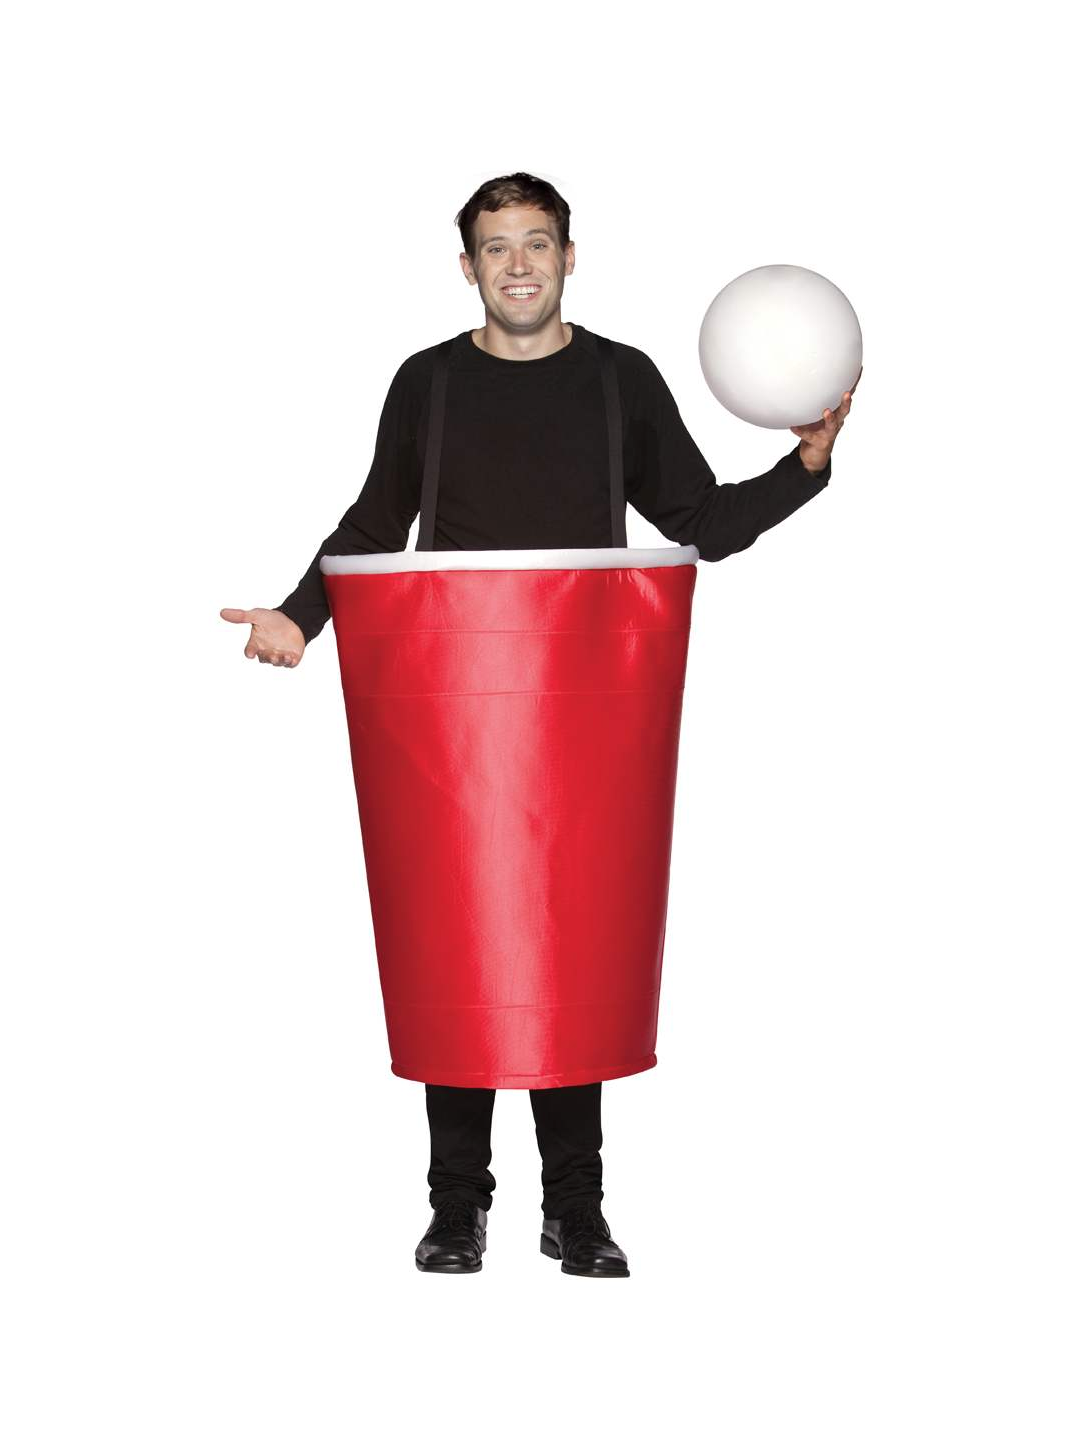 24 funny diy halloween costumes - easy & funny costumes for halloween